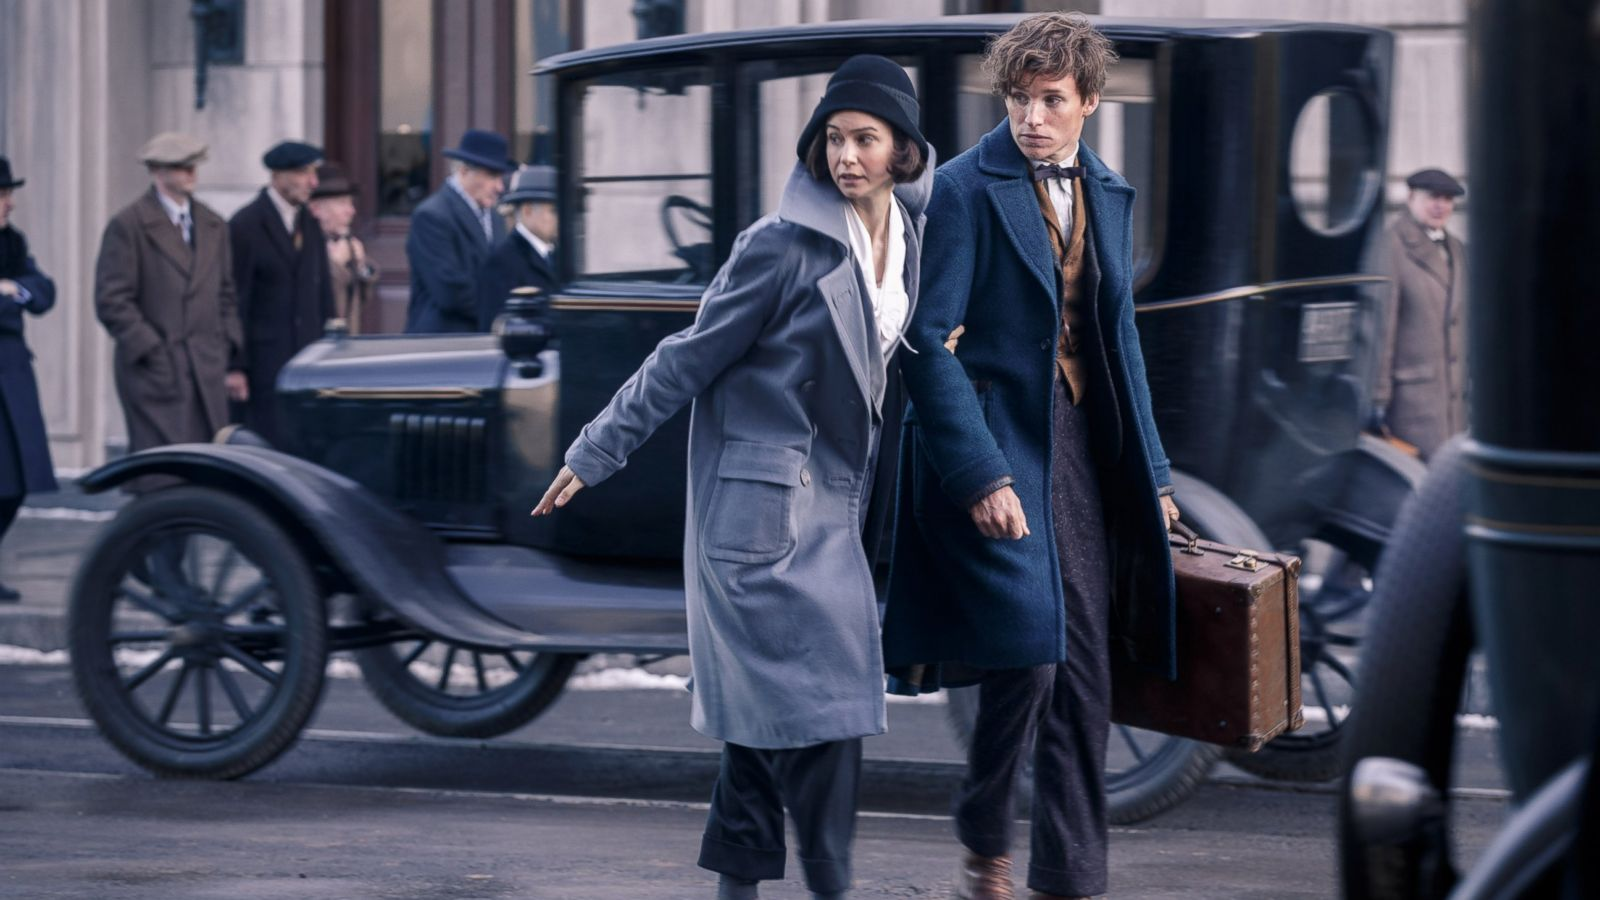 Inside The First Fantastic Beasts And Where To Find Them Trailer